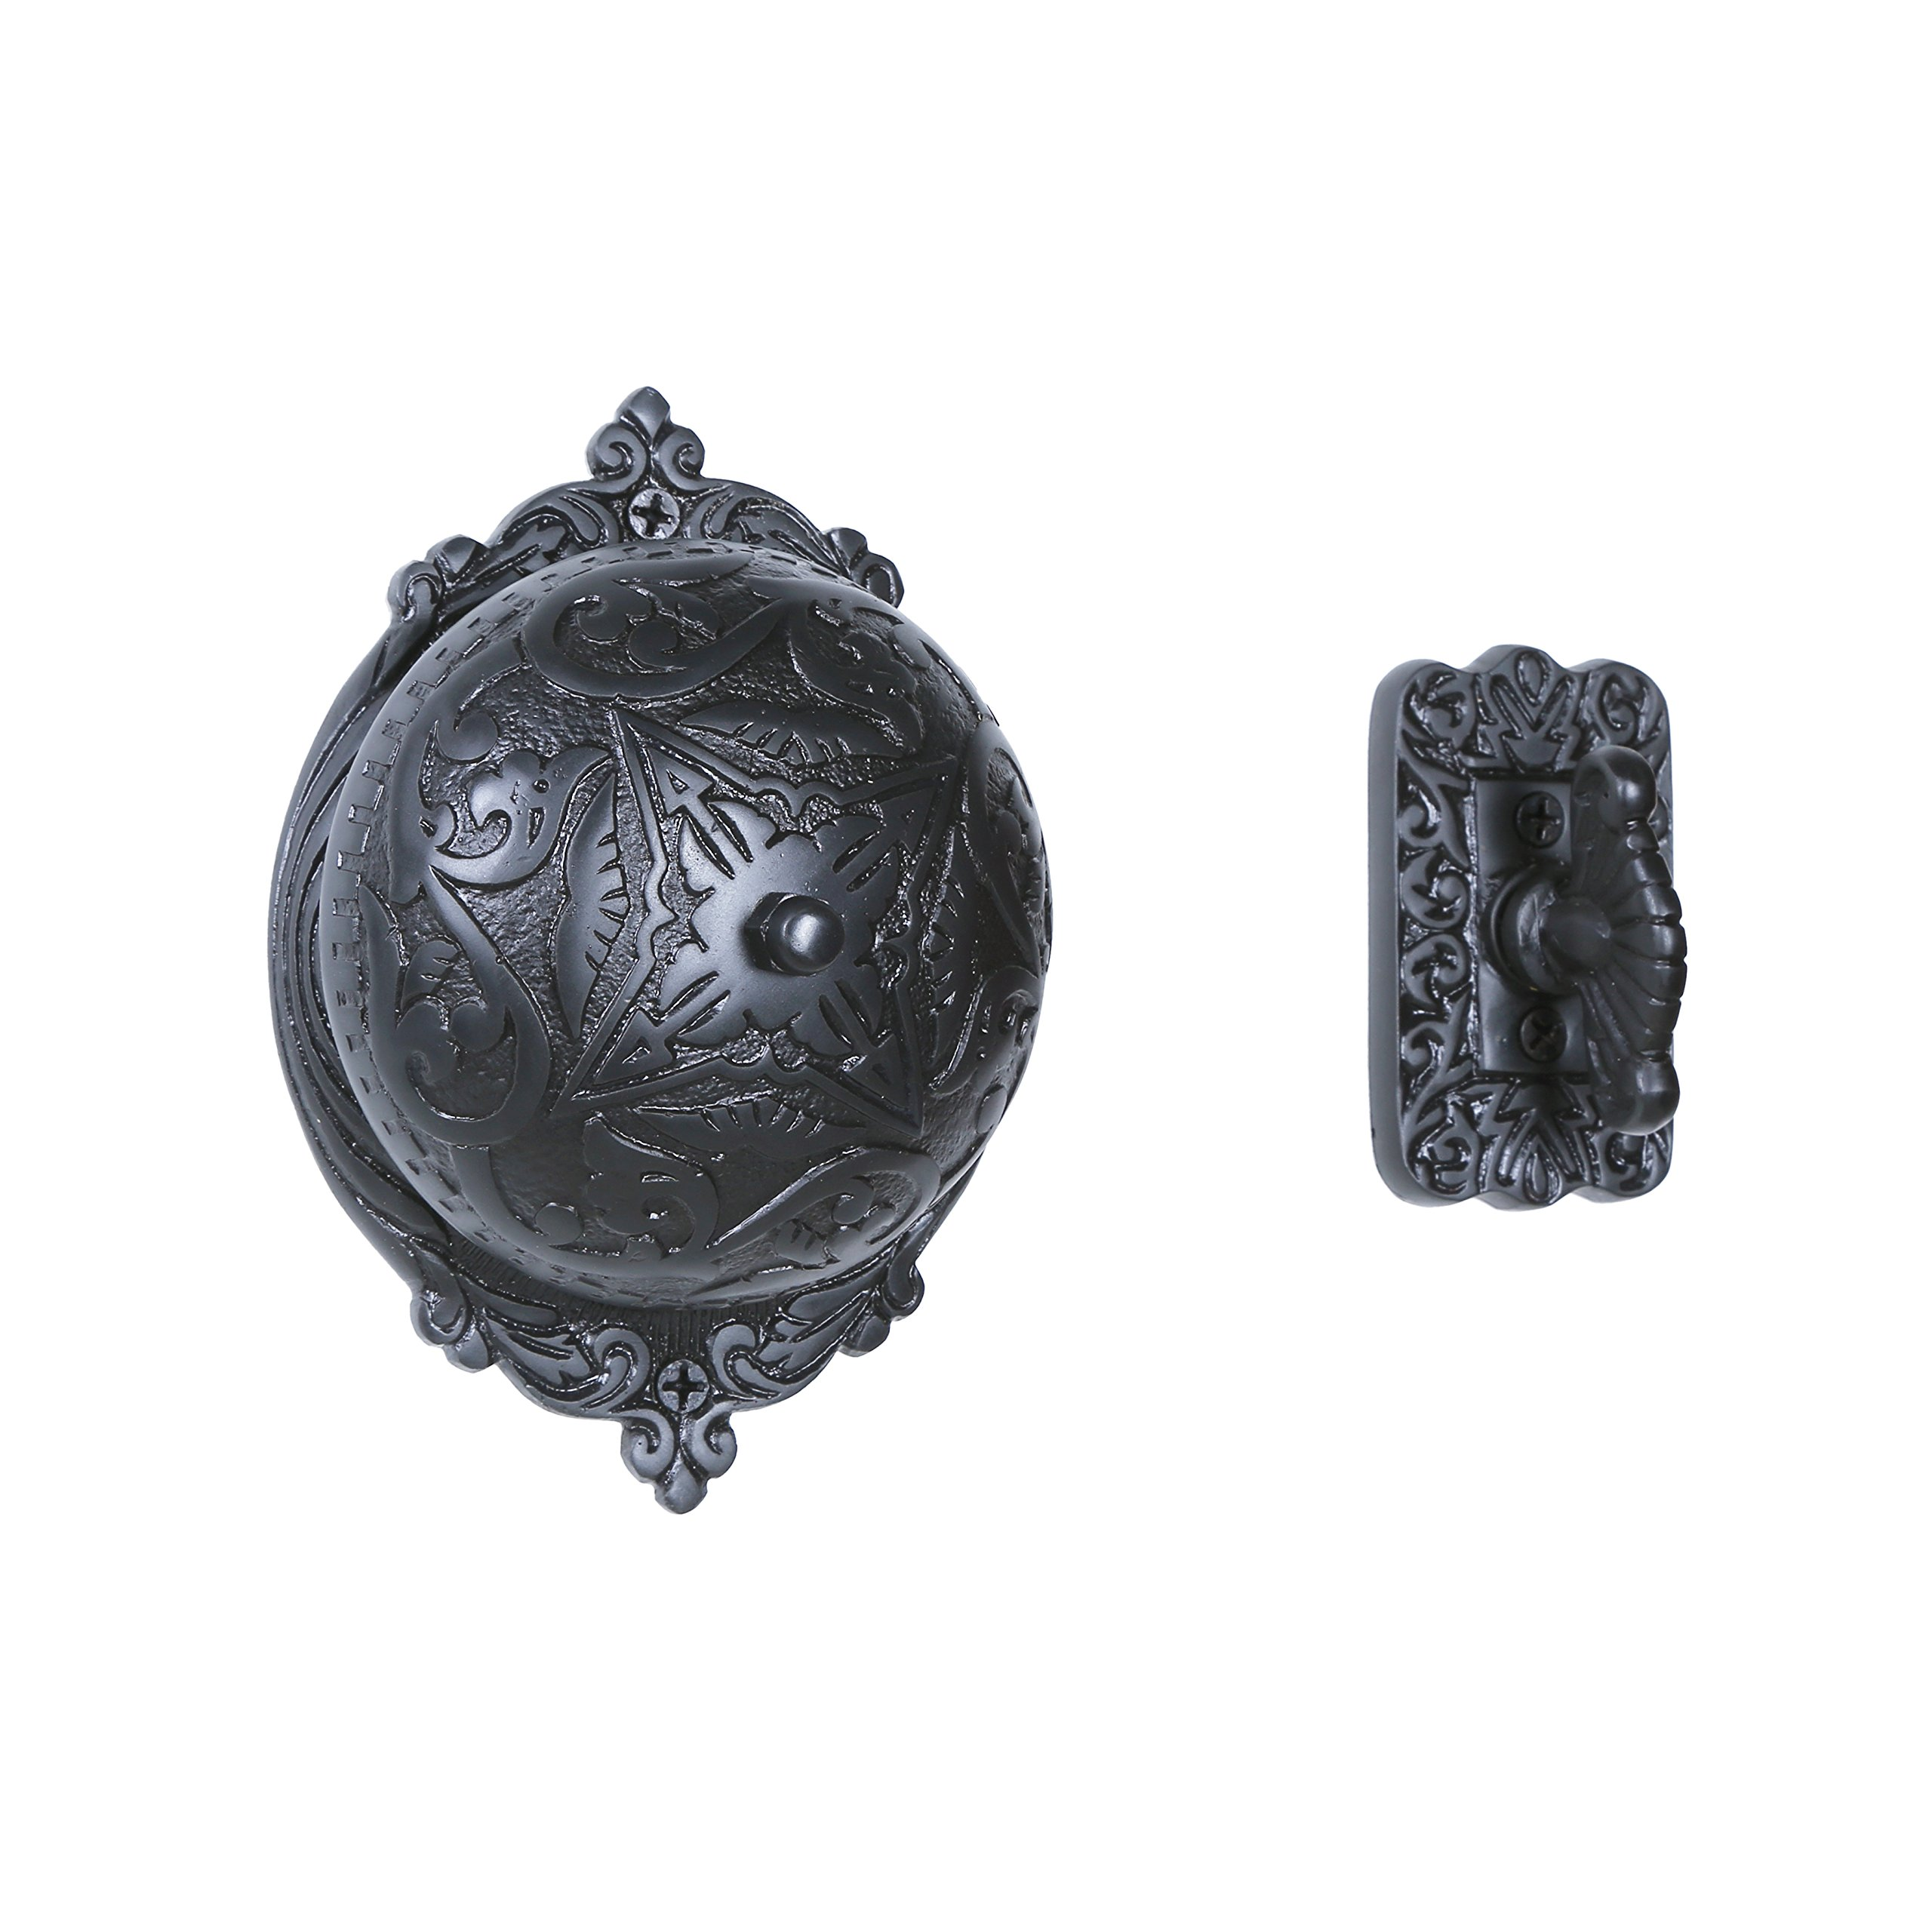 A29 Twist Hand-Turn Solid Brass Wireless Mechanical Doorbell Chime in Oil Rubbed Bronze Finish Vintage Decorative Antique Victorian Door Bell with Easy Installation by A29